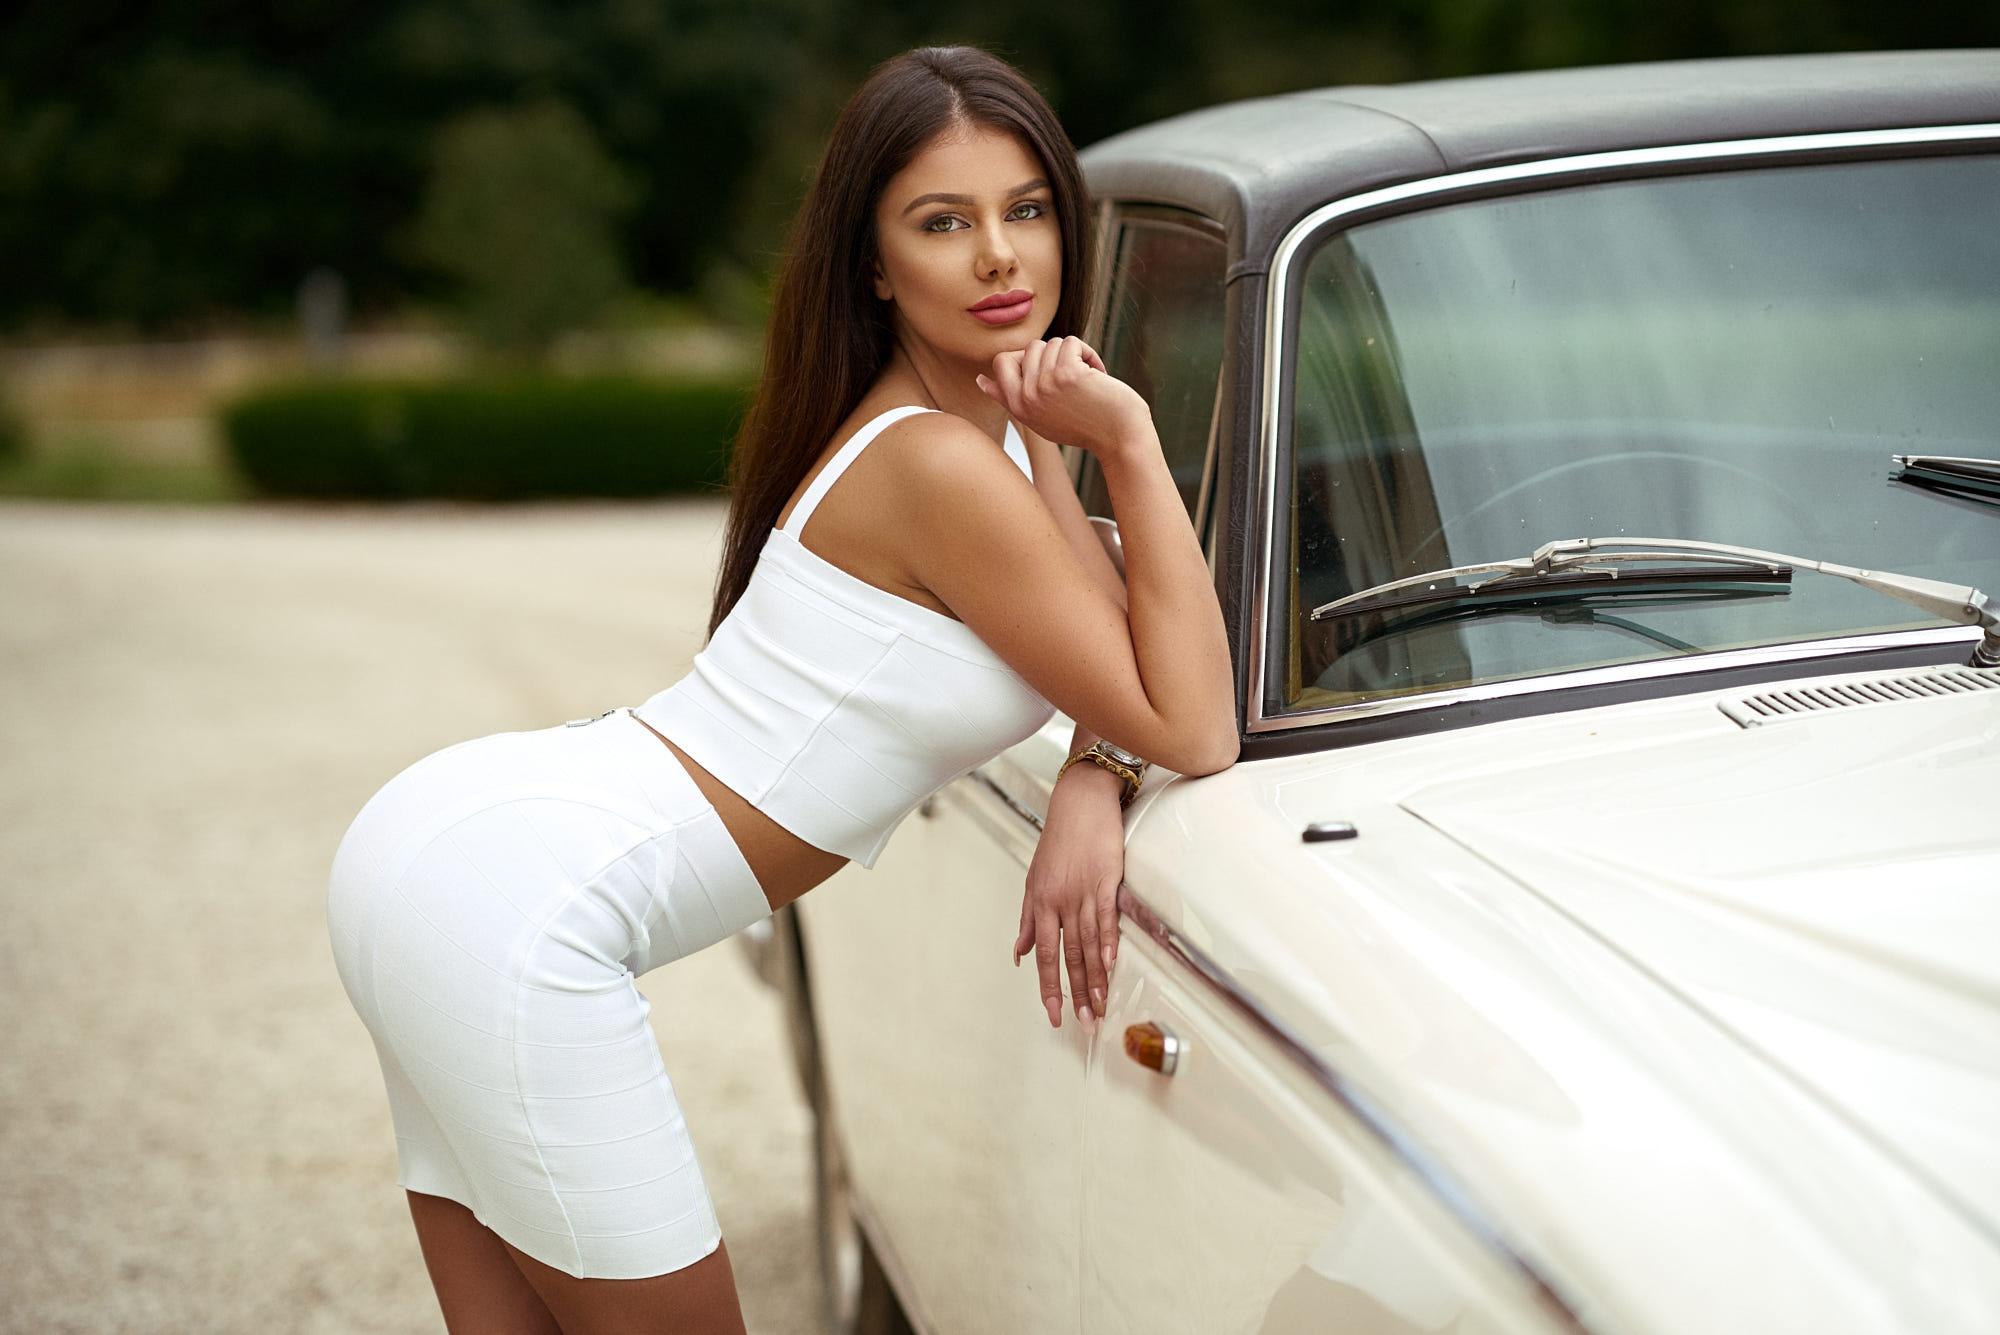 Local Women Looking For Men Nc Are Fat Single Women Easy